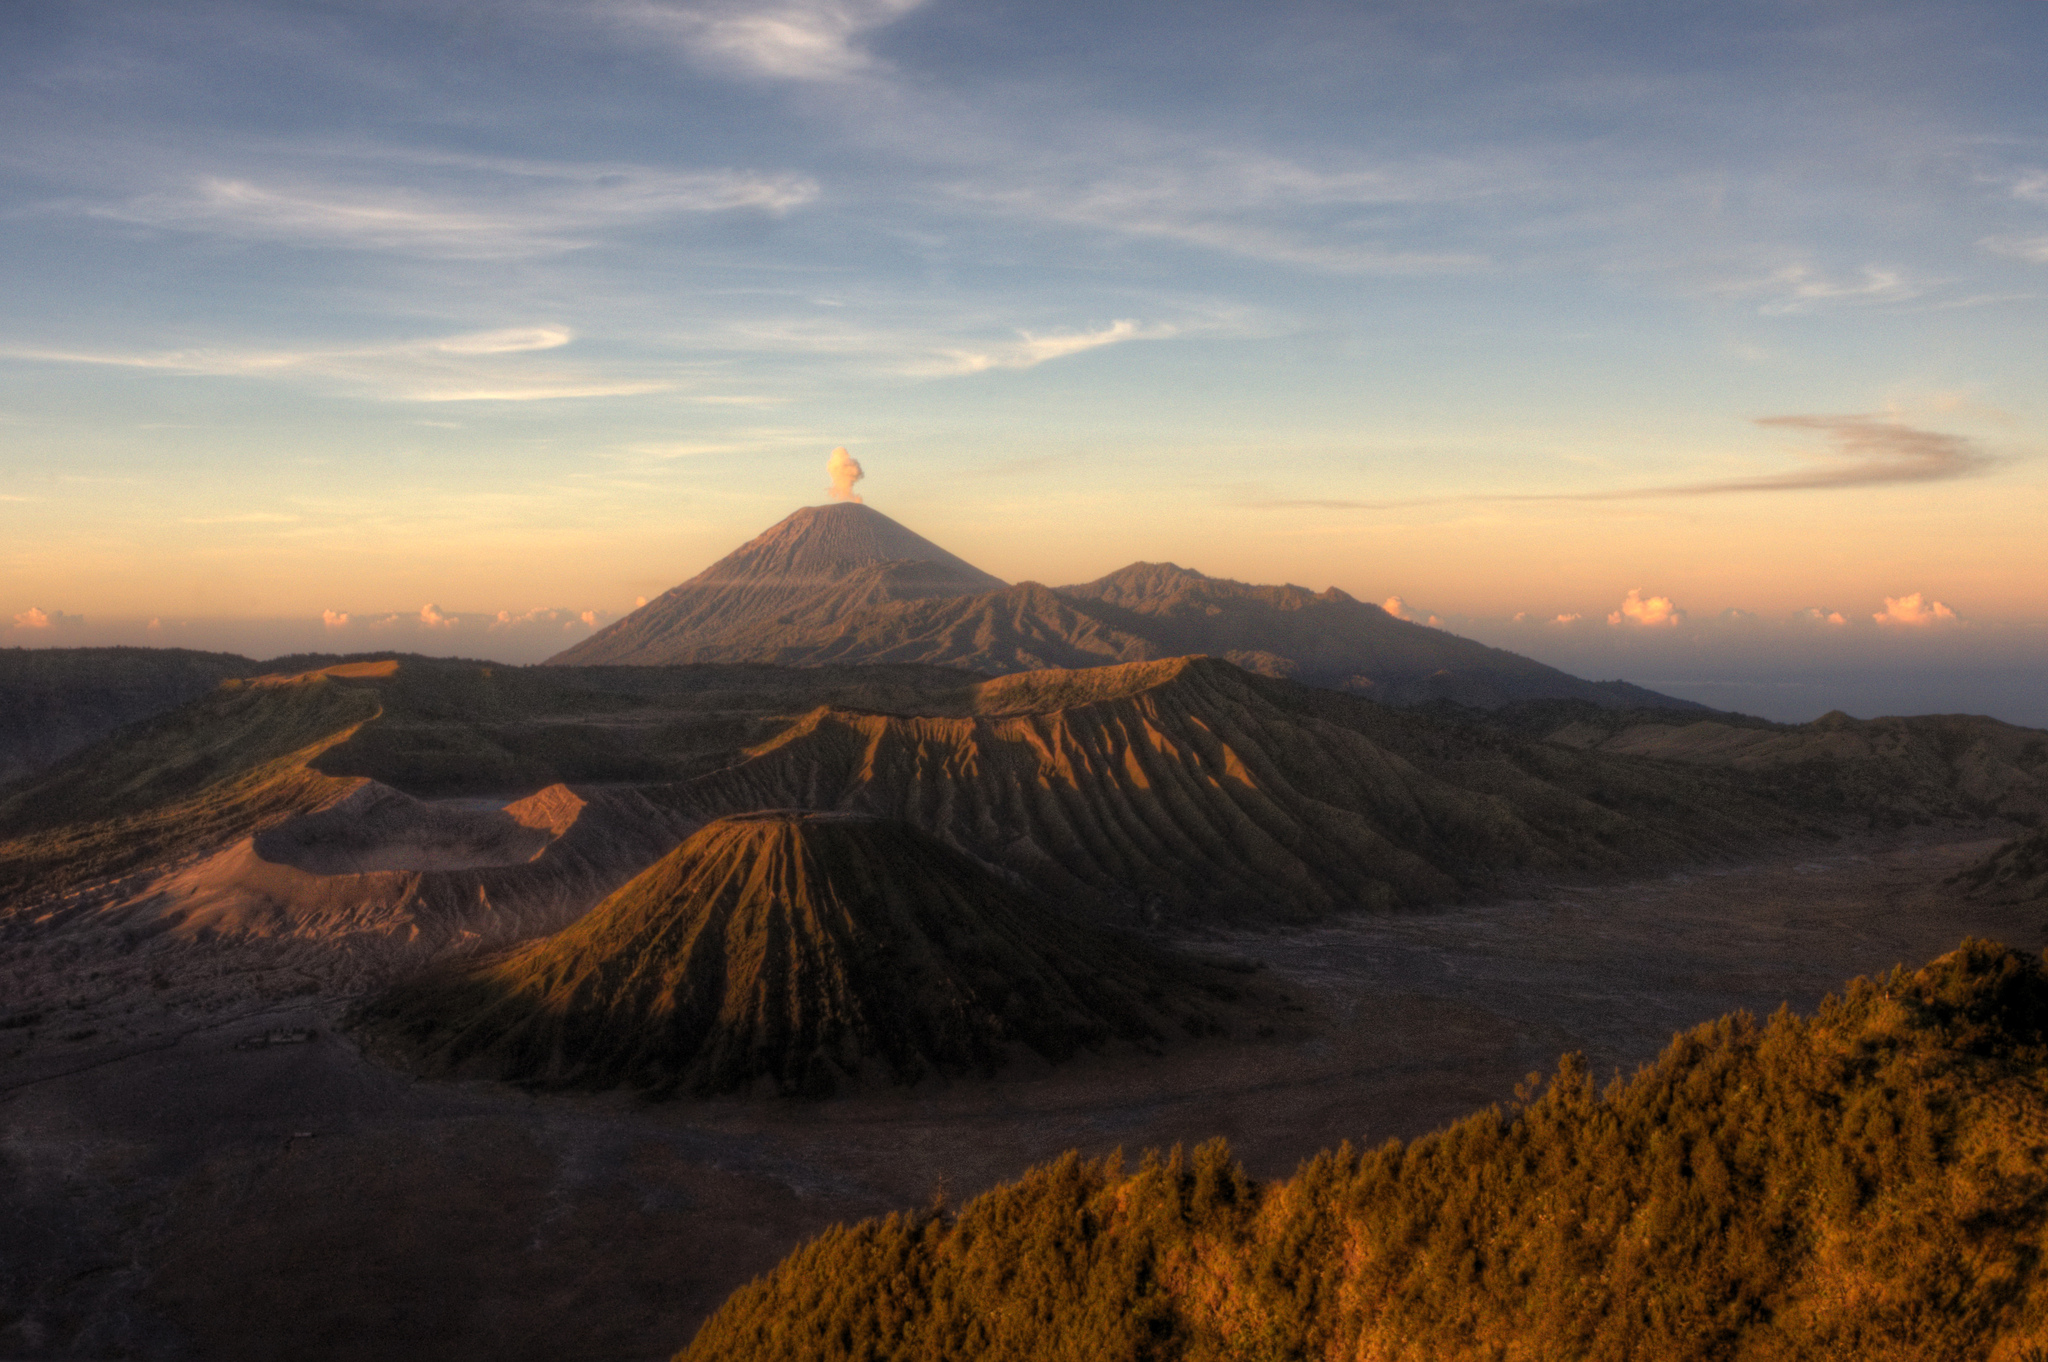 """Morning at Bromo Java"" by Mariusz Kluzniak via Flickr Creative Commons"